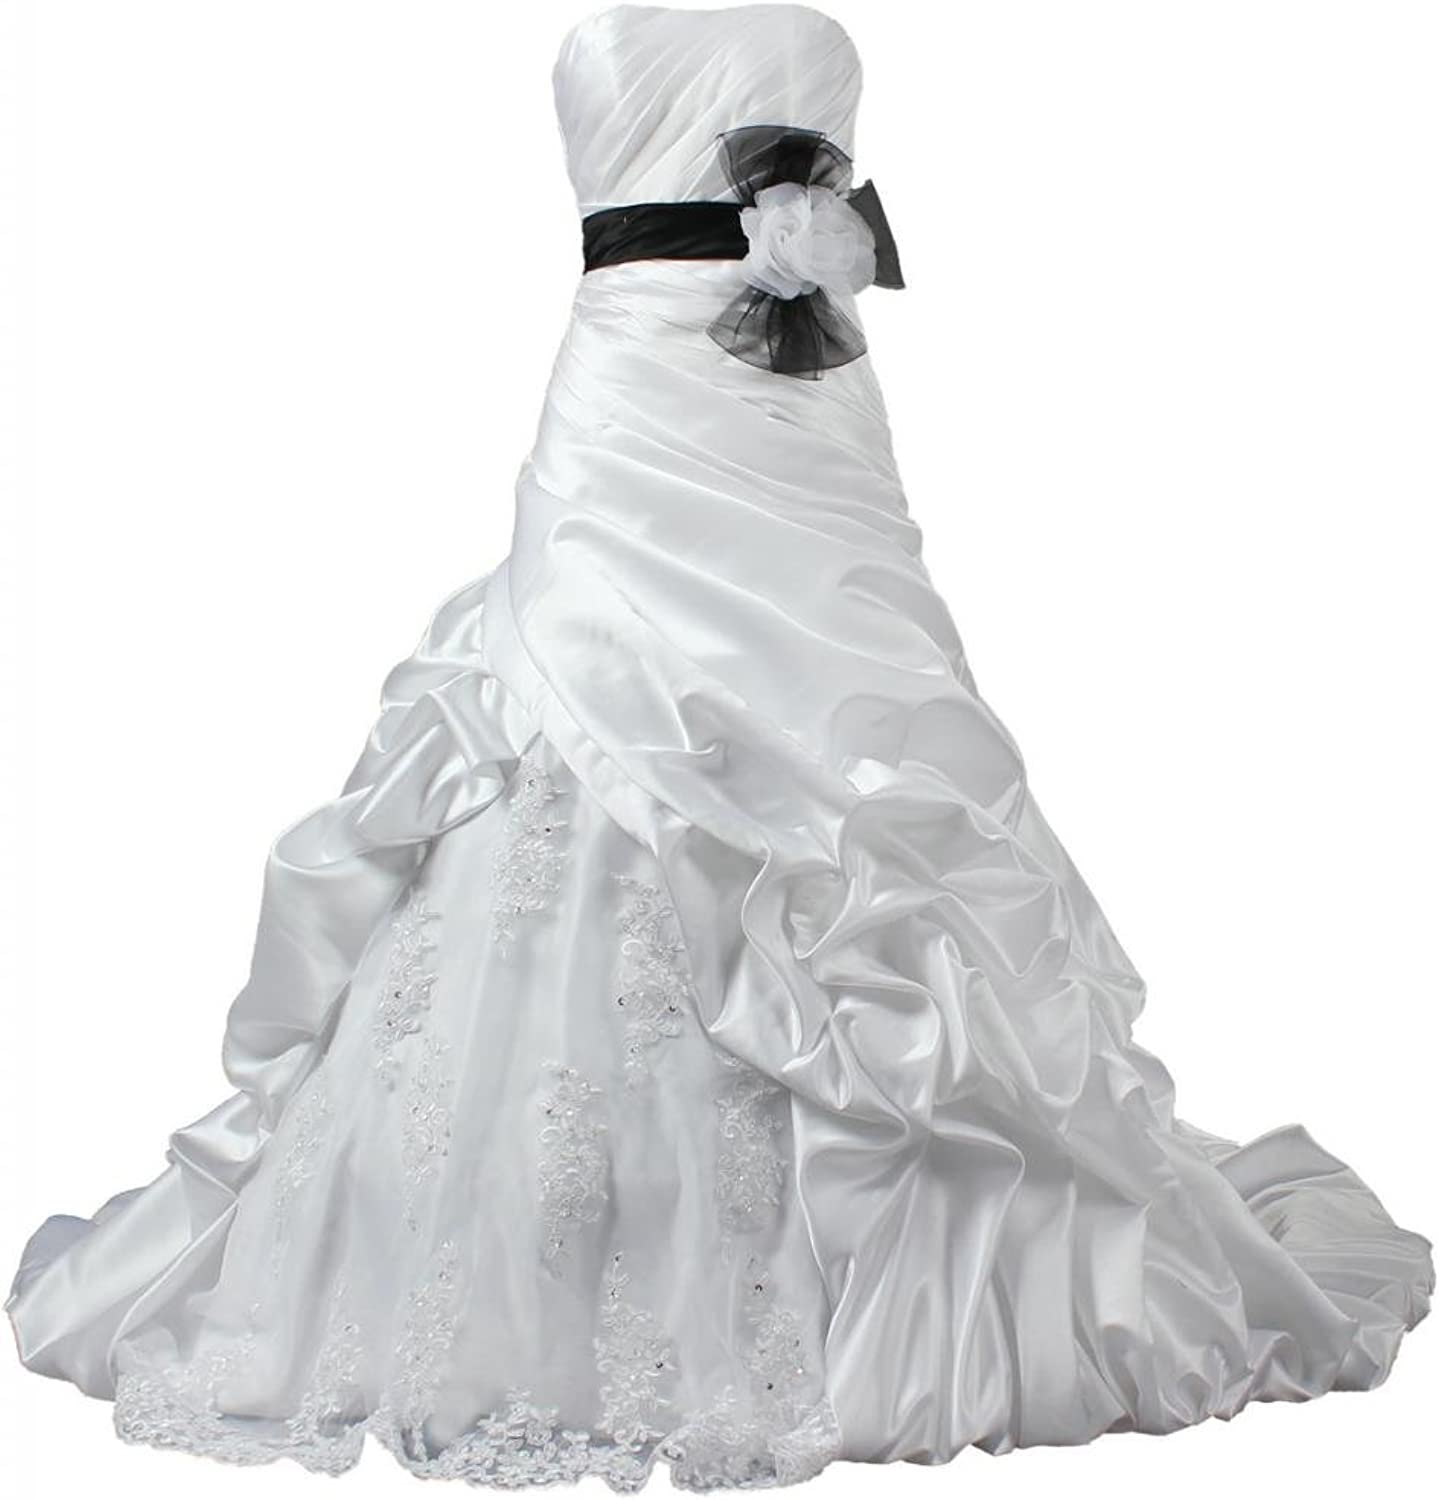 ANTS Women's Strapless Satin and Lace Wedding Dress for Bride